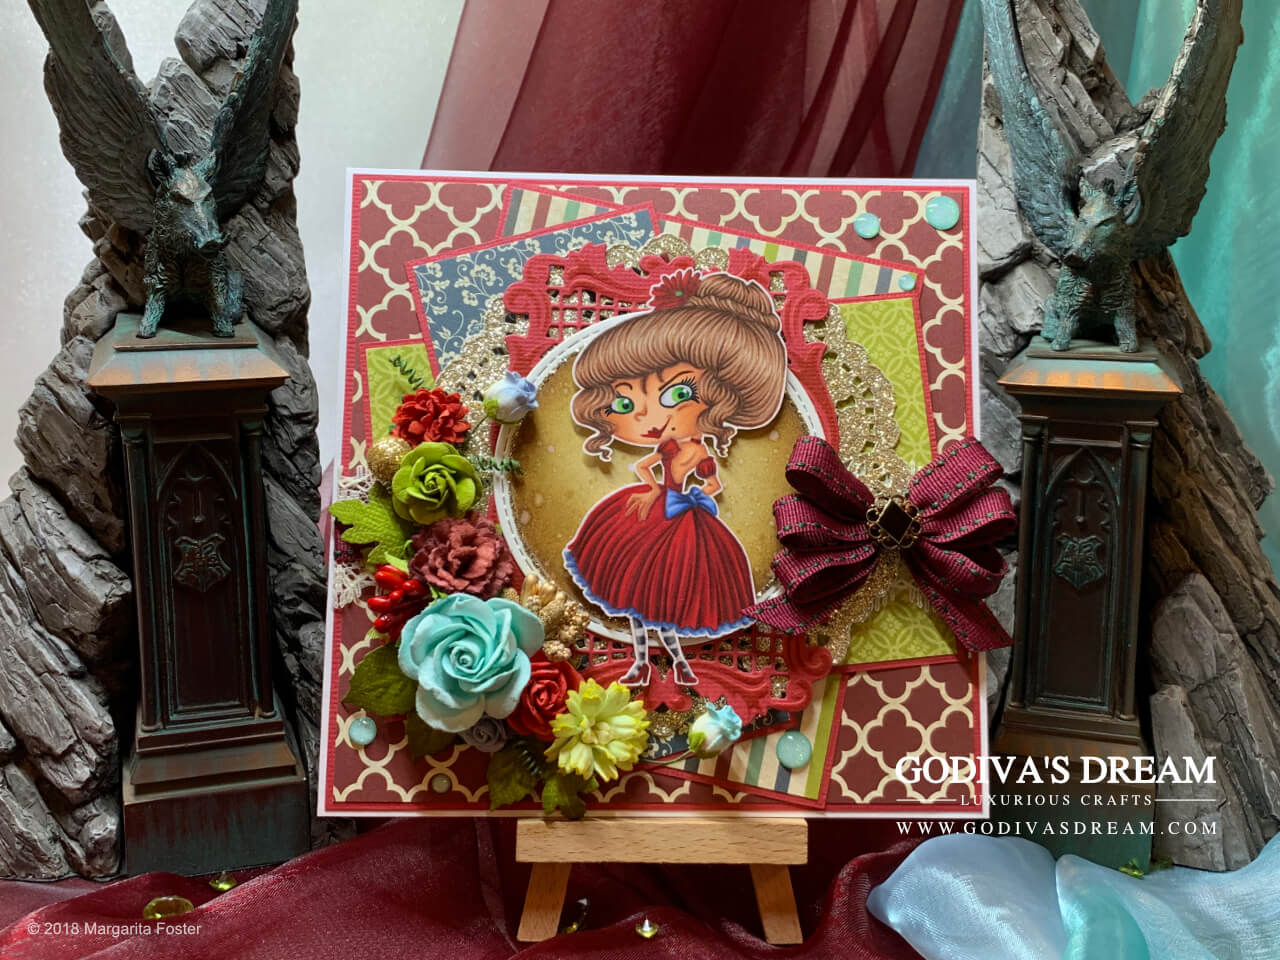 """Quirky Birthday Card """"'Ello Poppet"""" by Godiva's Dream. Are you a fan of quirky characters? I certainly am! This jewel-toned birthday card is luxurious, feminine and quirky at the same time. #cardmaking #handmadecard #papercrafting #birthdaycard #stamping"""